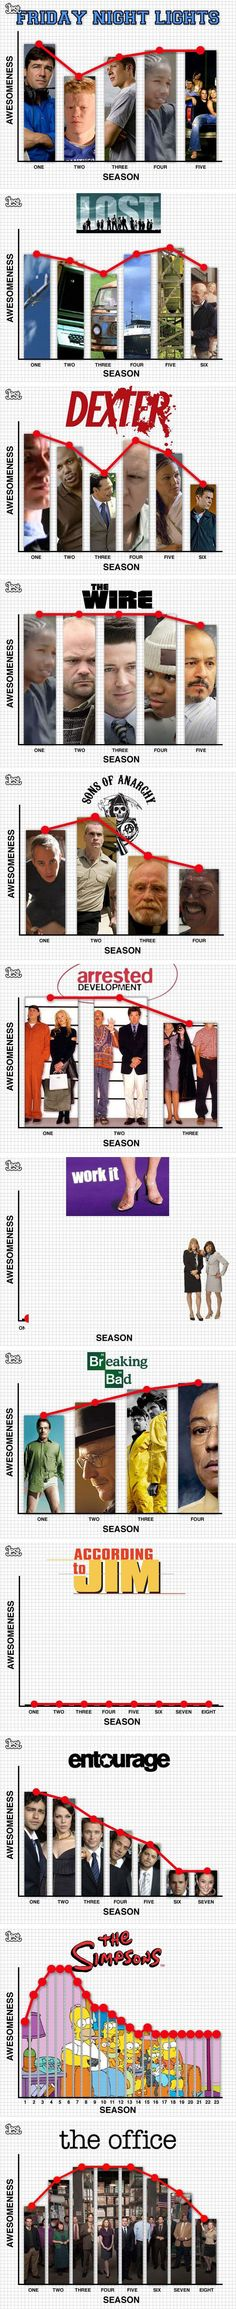 TV show quality by season chart...surprising how accurate...